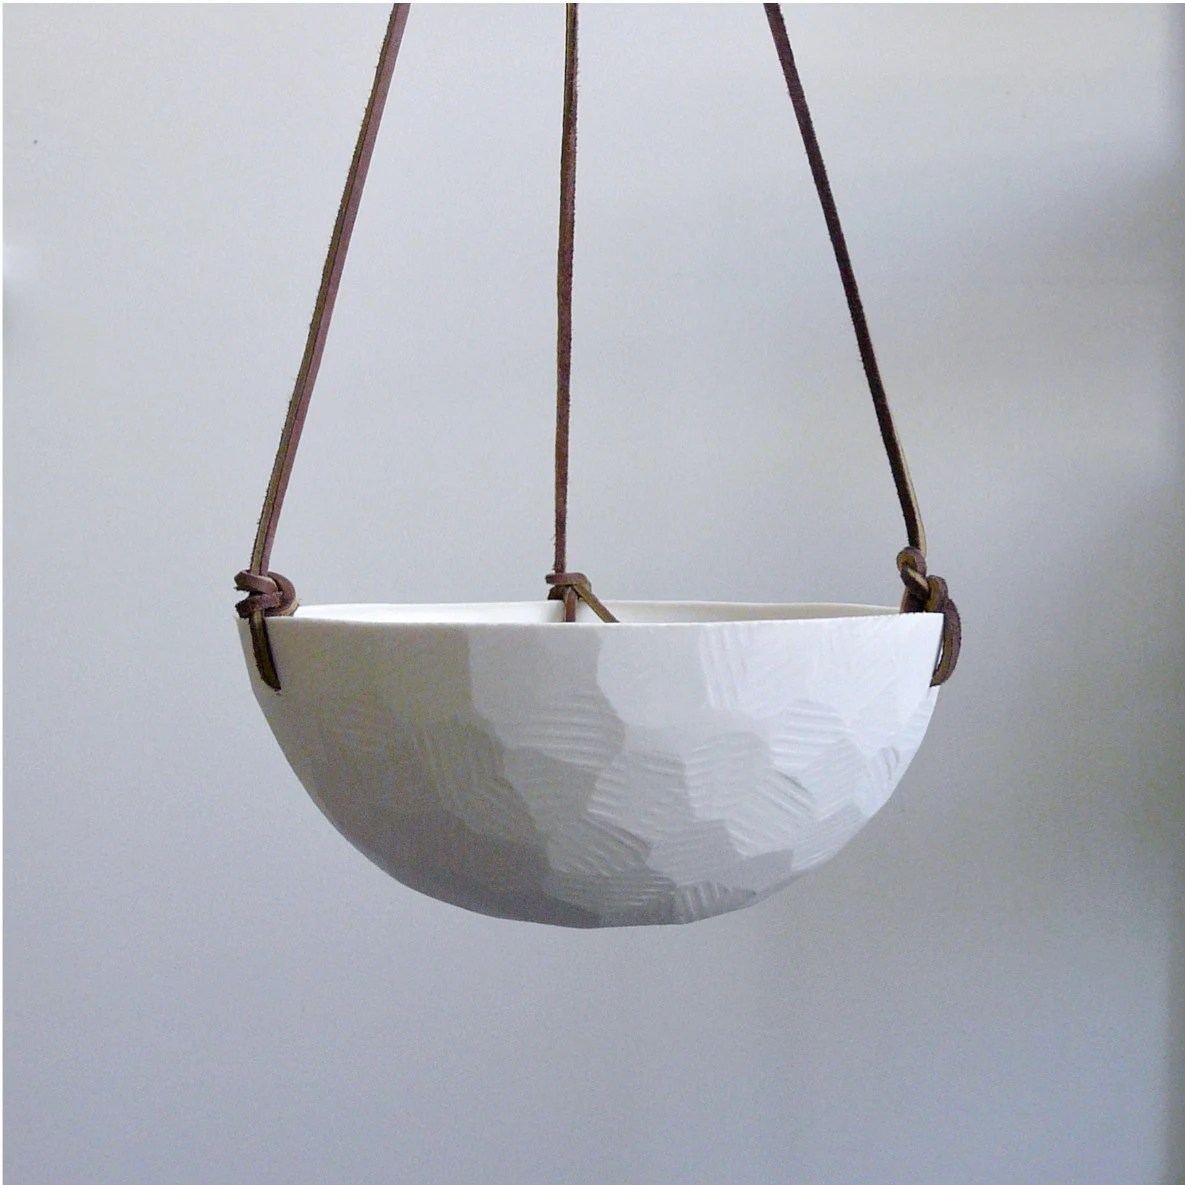 Hanging Planters Australia Hanging Ceramic Porcelain Planter With Leather By